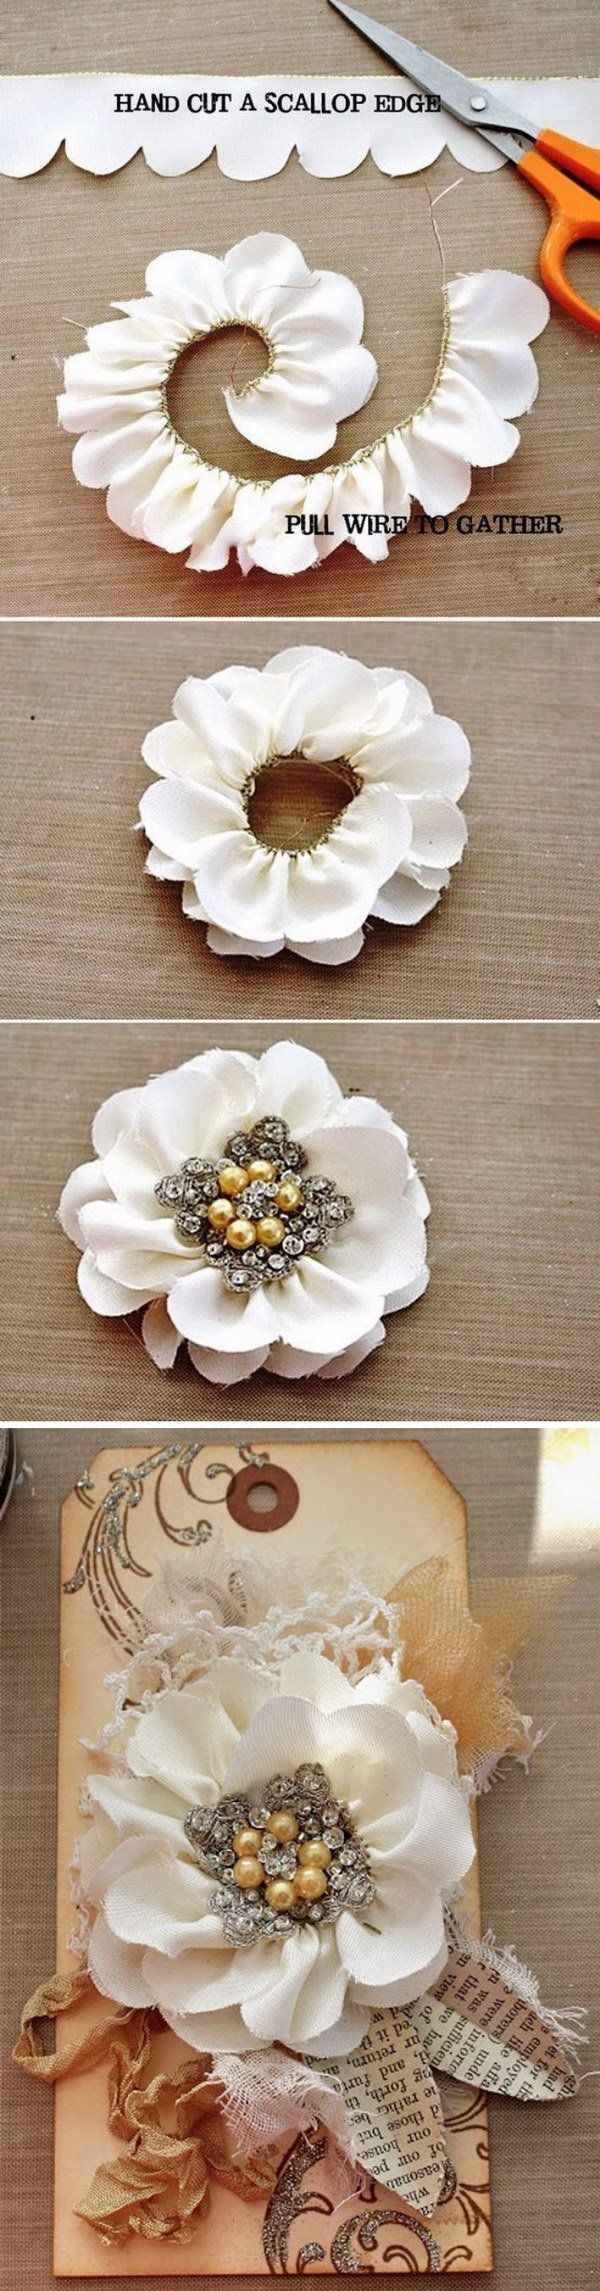 best 25 shabby chic crafts ideas on pinterest glass